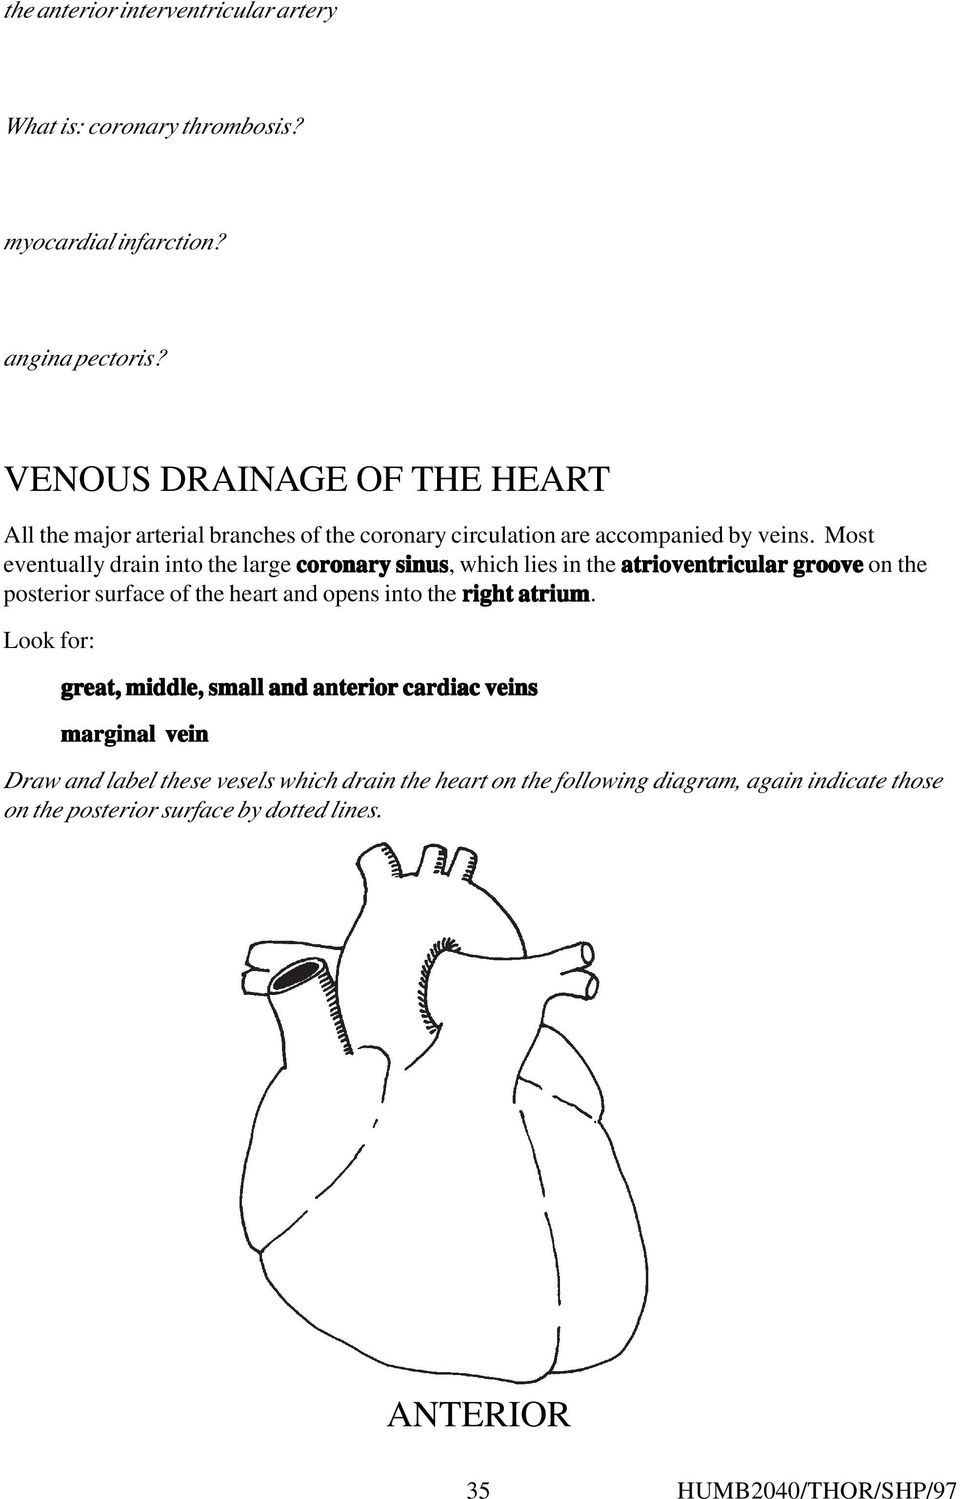 Most eventually drain into the large coronary sinus, which lies in the atrioventricular groove on the posterior surface of the heart and opens into the right